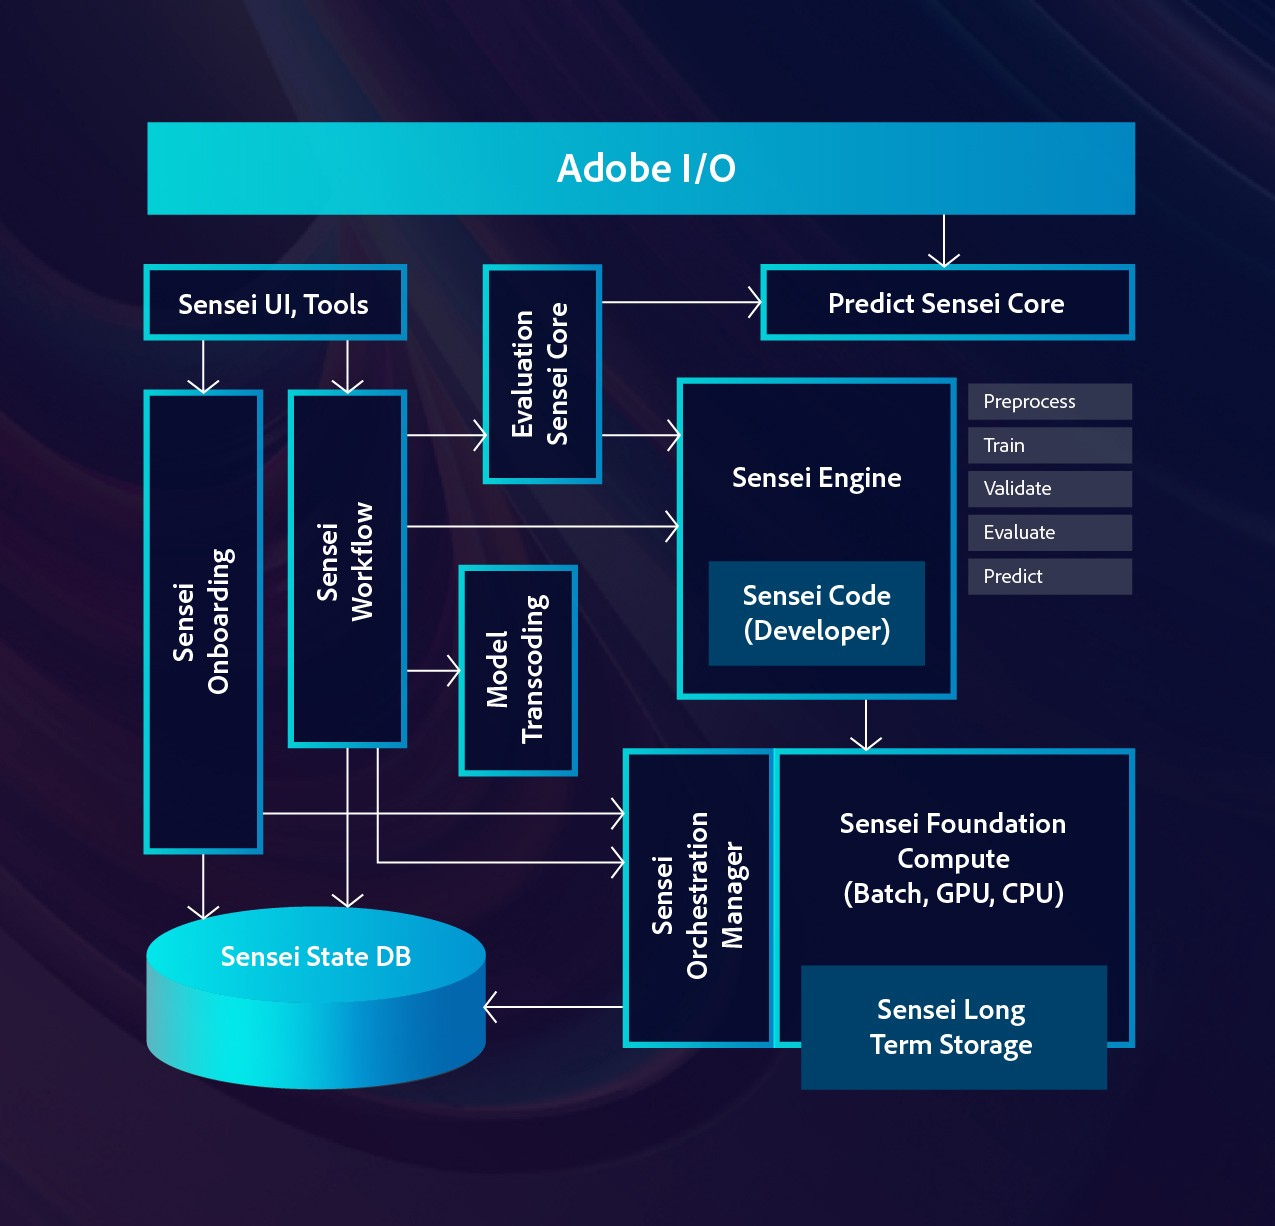 A flow chart highlighting the Adobe Sensei Training framework and how it interacts with the Adobe Experience Platform.